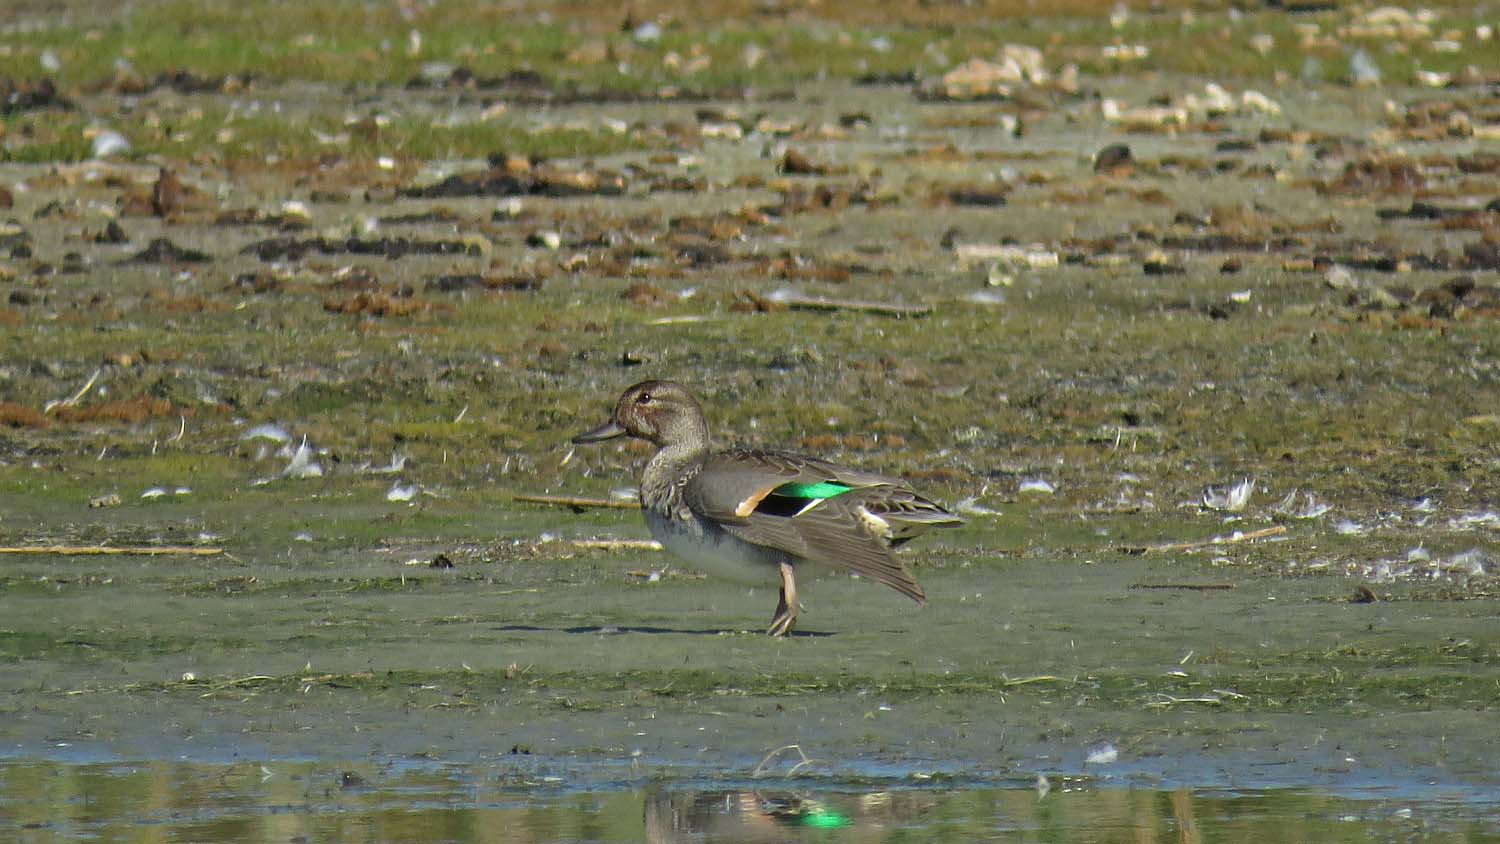 I was able to see this female green-winged teal, plus another lady, at Jamaica Bay Wildlife Refuge on October 18, 2017.